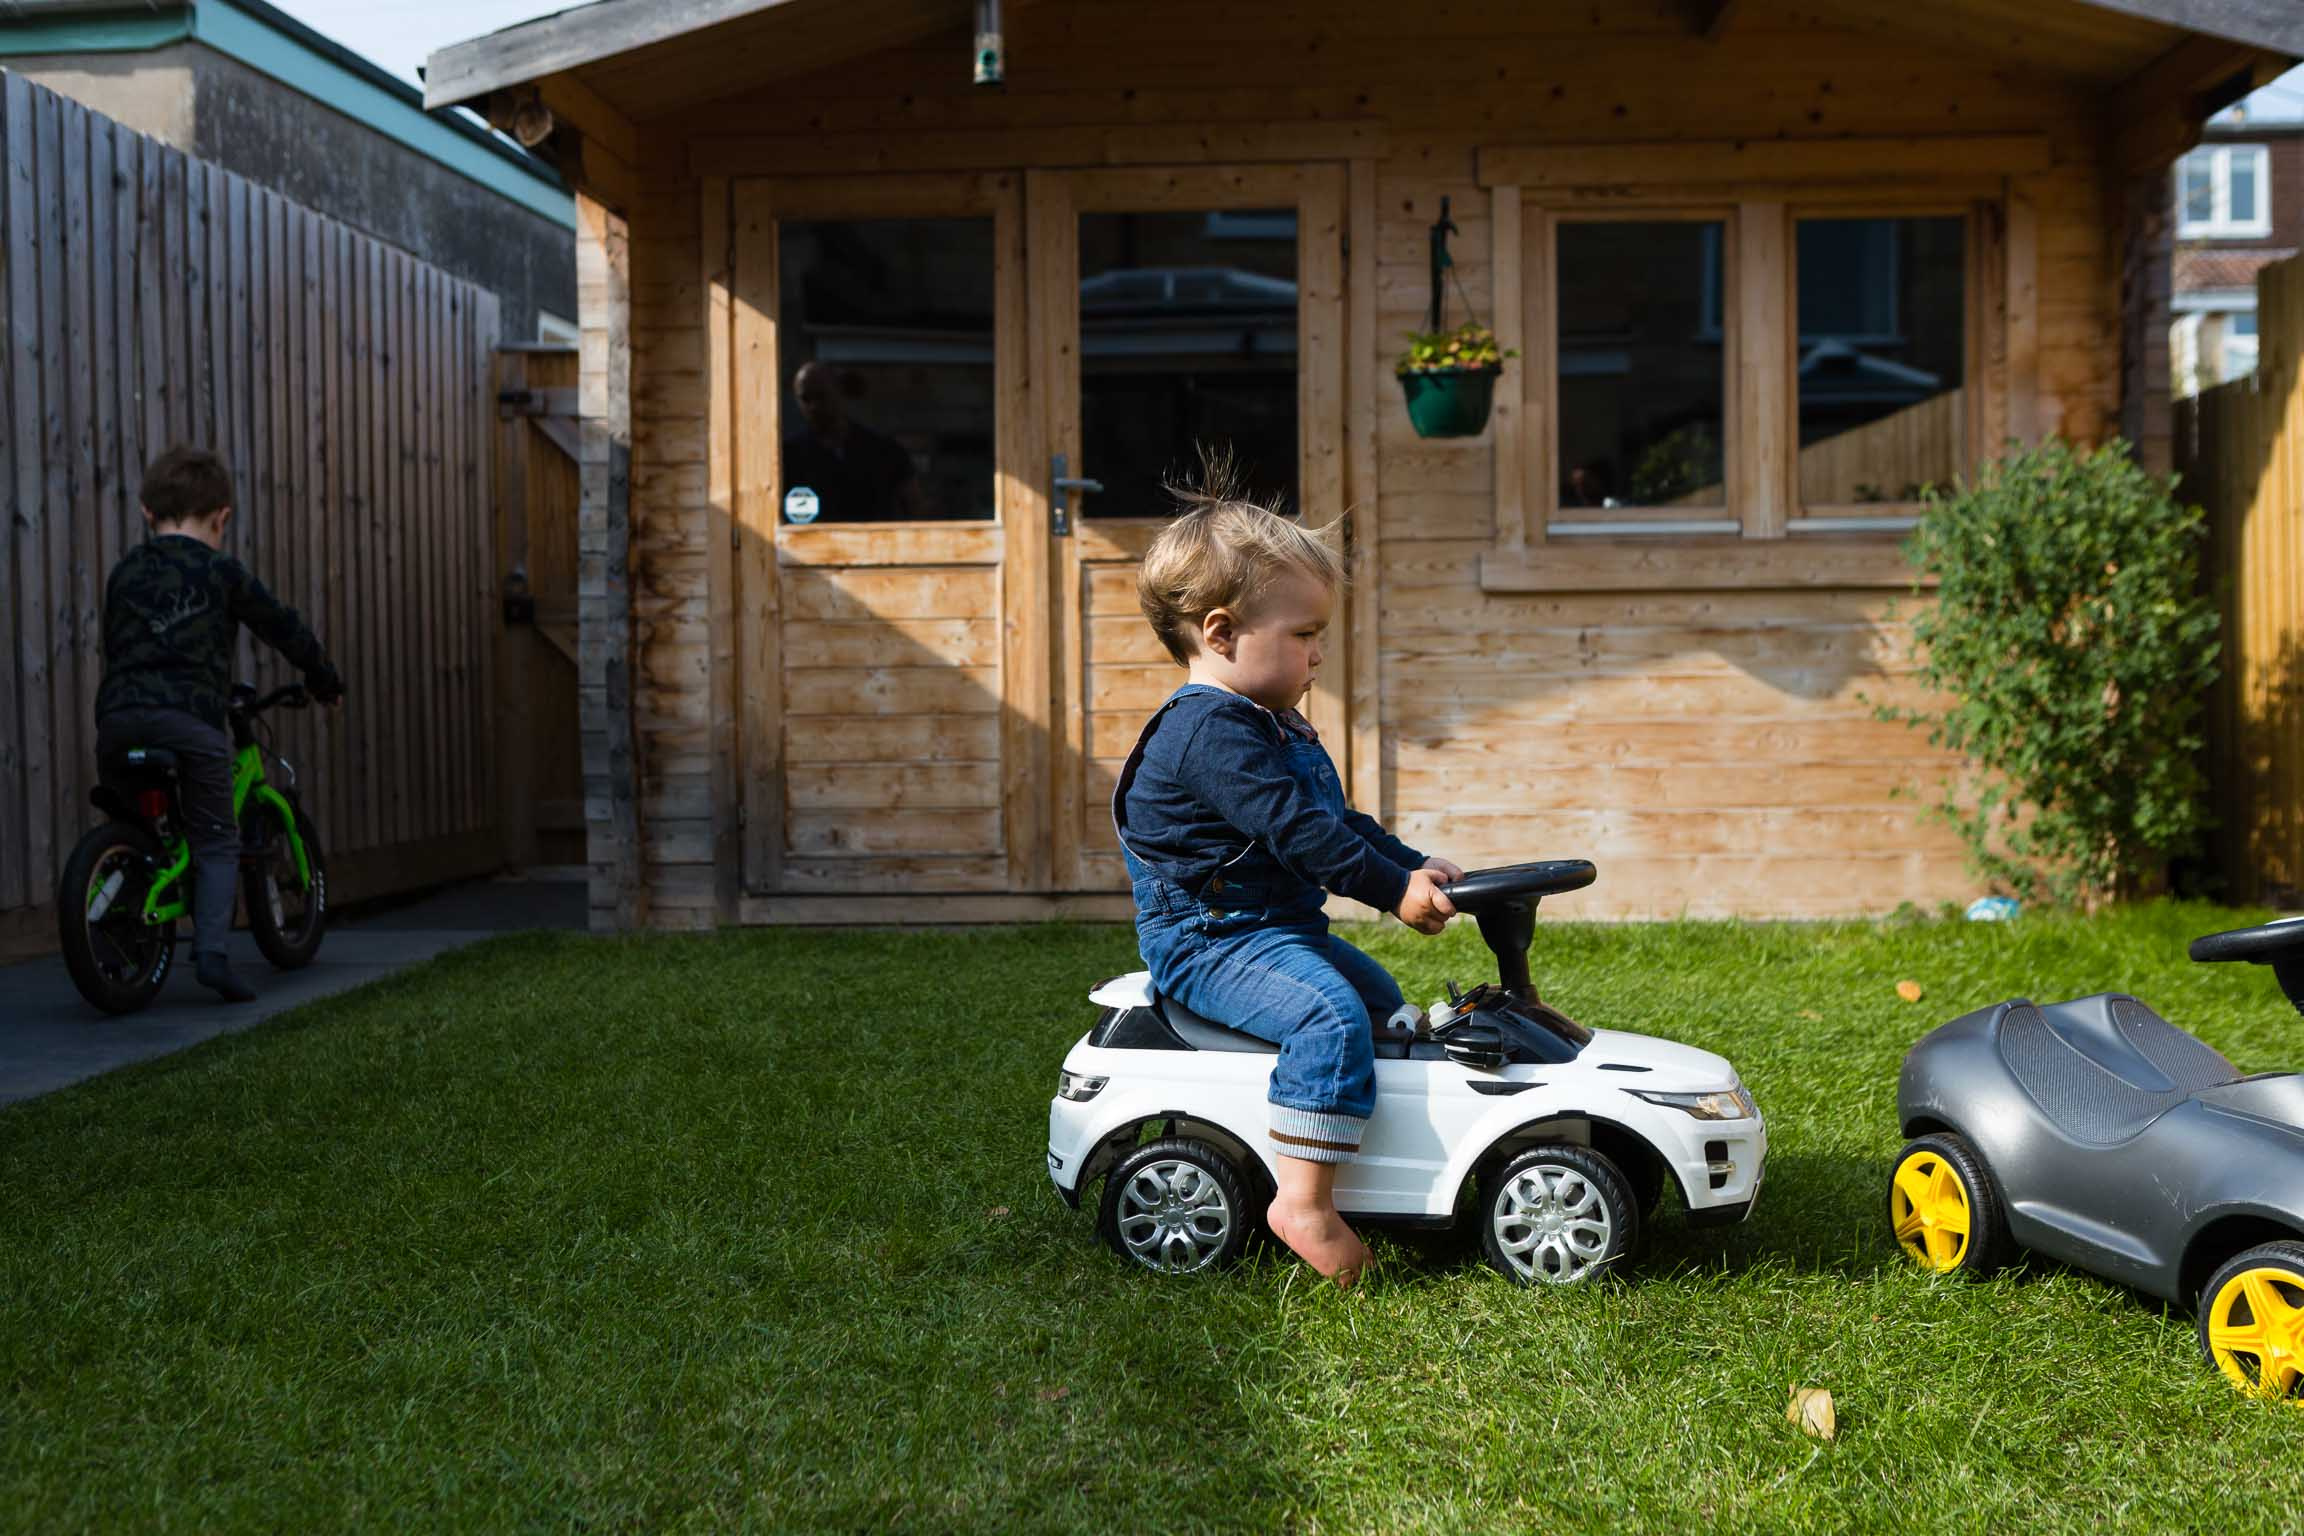 Little boy sat on his toy car in garden